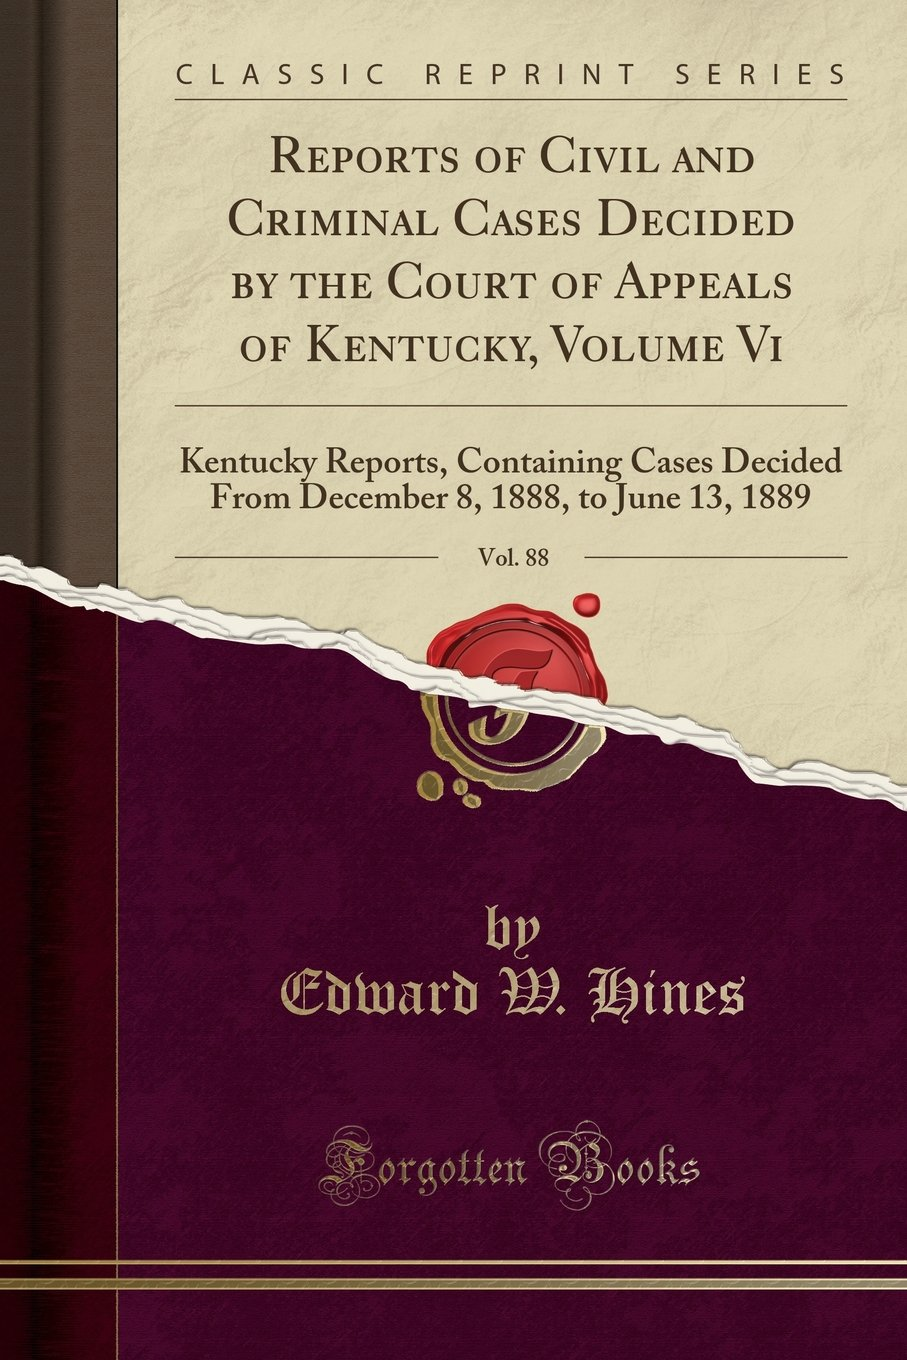 Download Reports of Civil and Criminal Cases Decided by the Court of Appeals of Kentucky, Volume Vi, Vol. 88: Kentucky Reports, Containing Cases Decided From ... 8, 1888, to June 13, 1889 (Classic Reprint) pdf epub